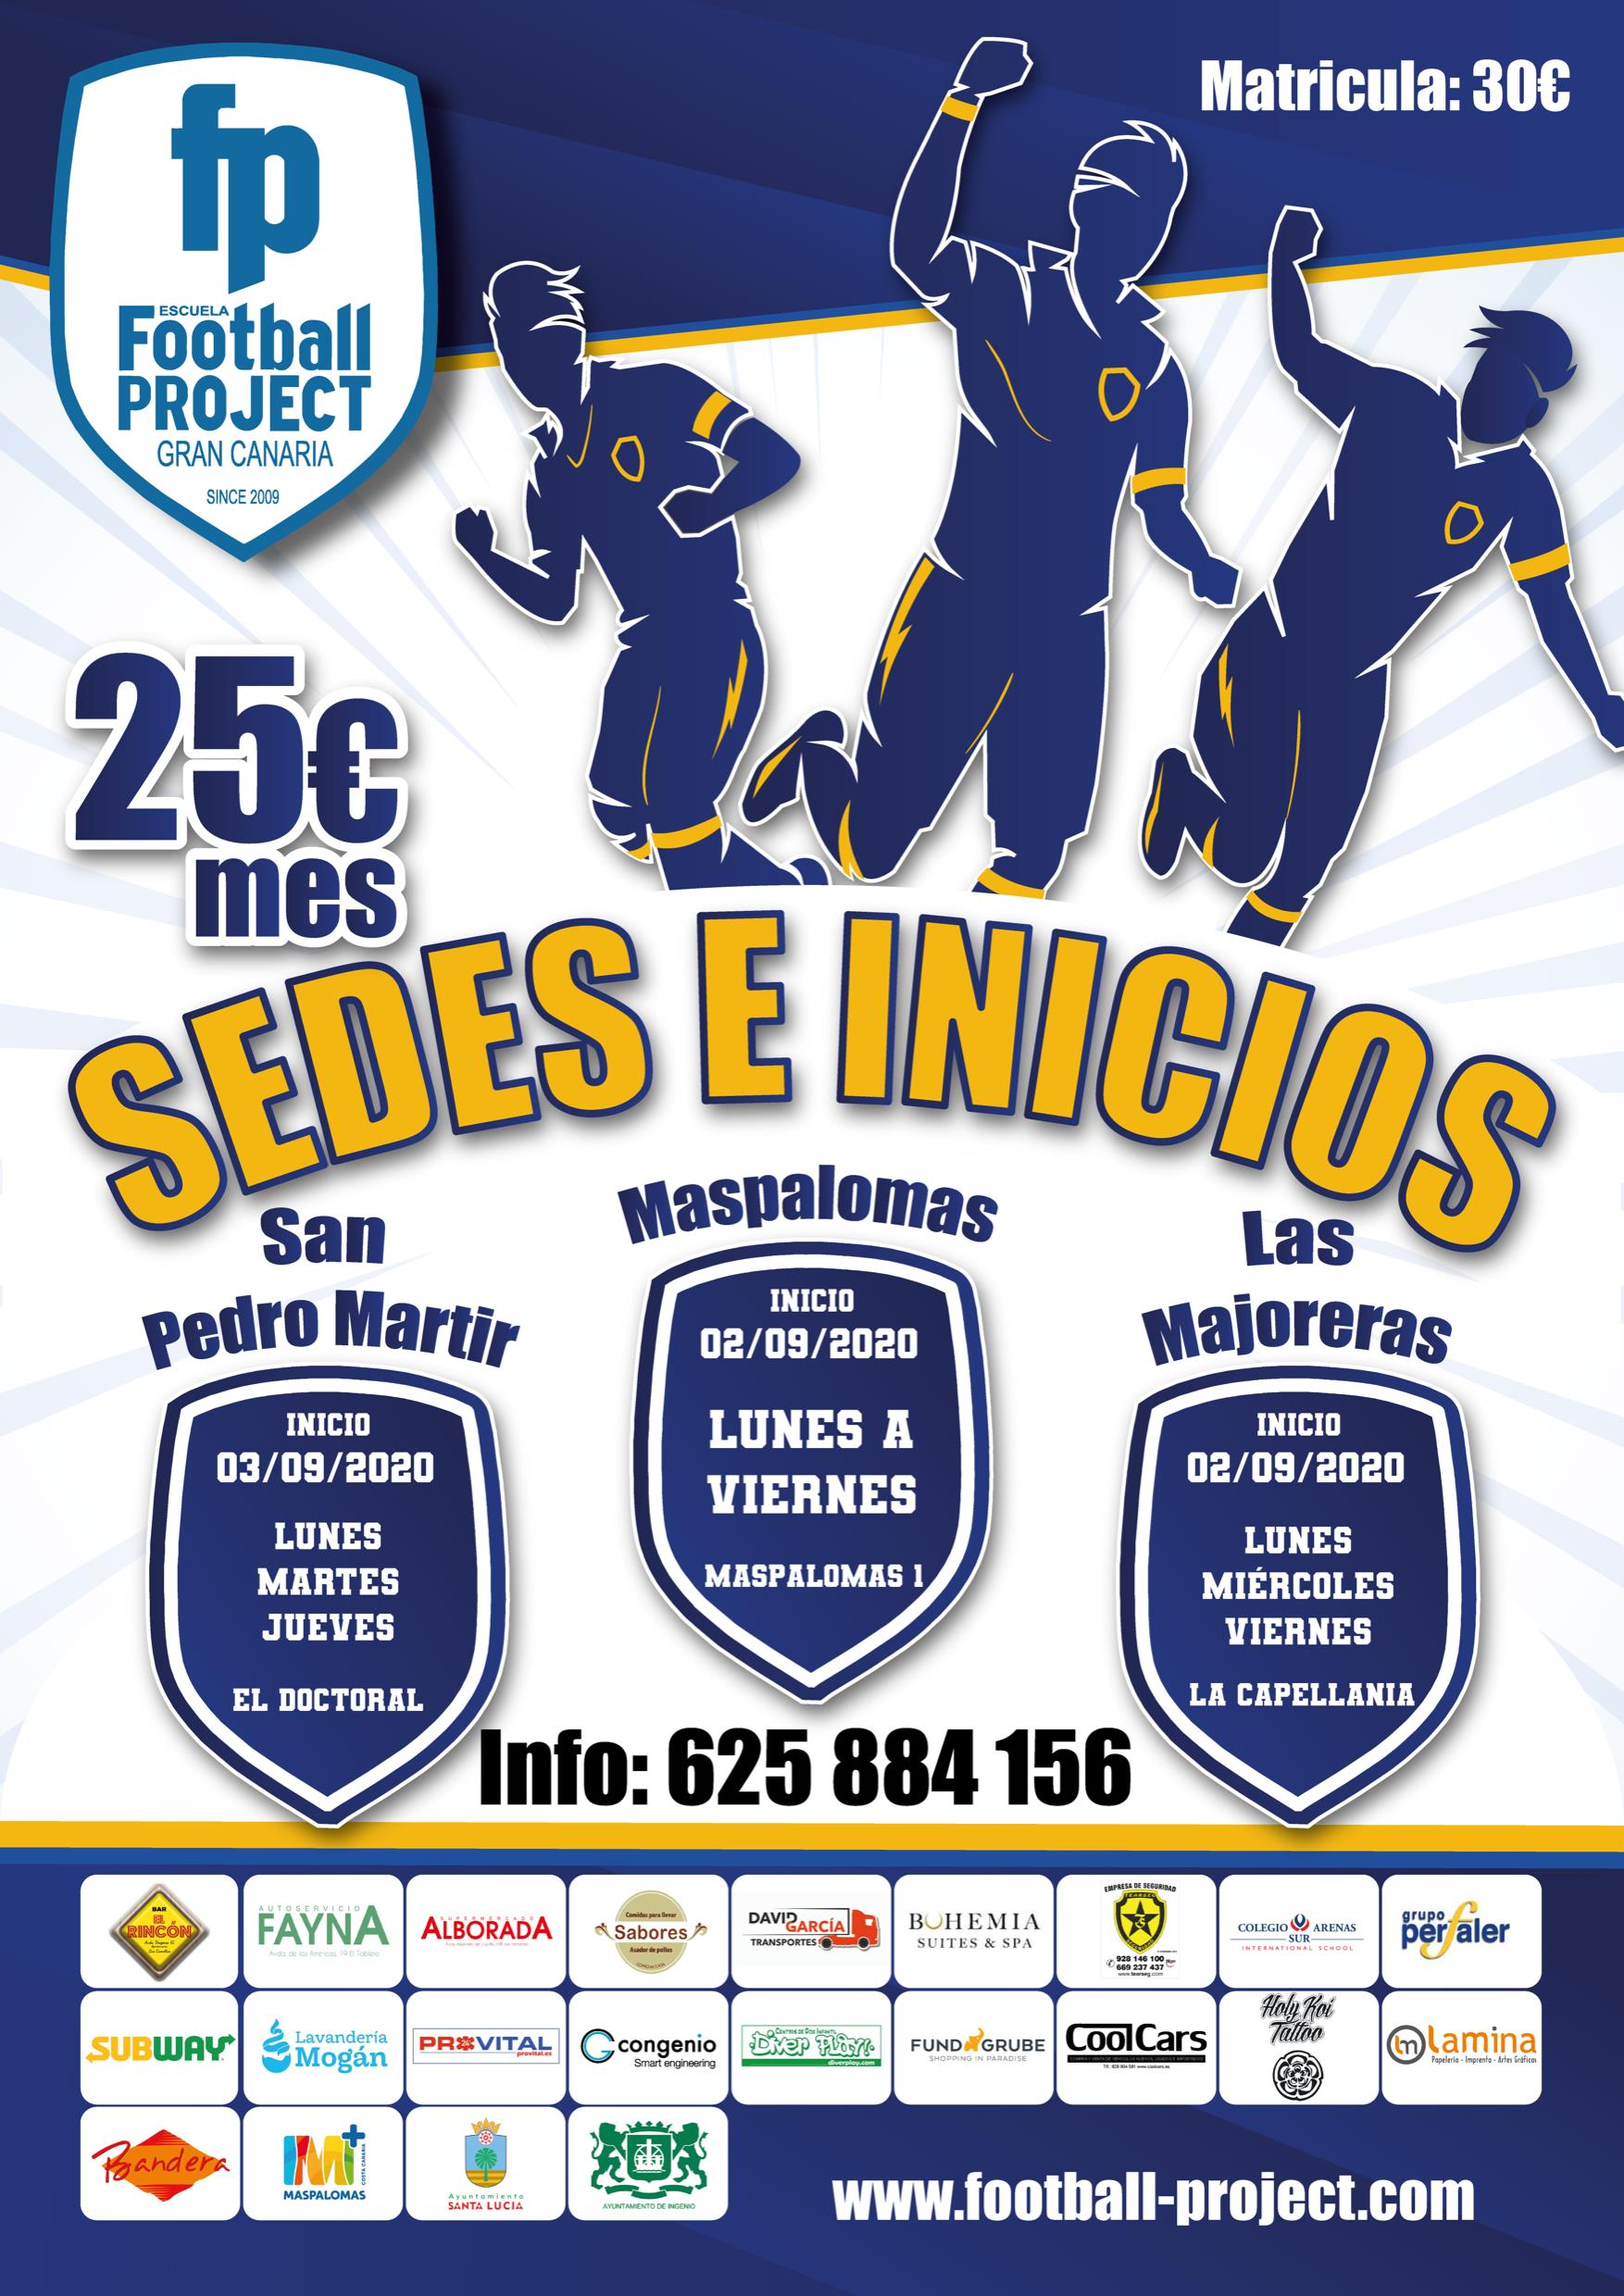 SEDES E INICIOS DE FOOTBALL PROJECT